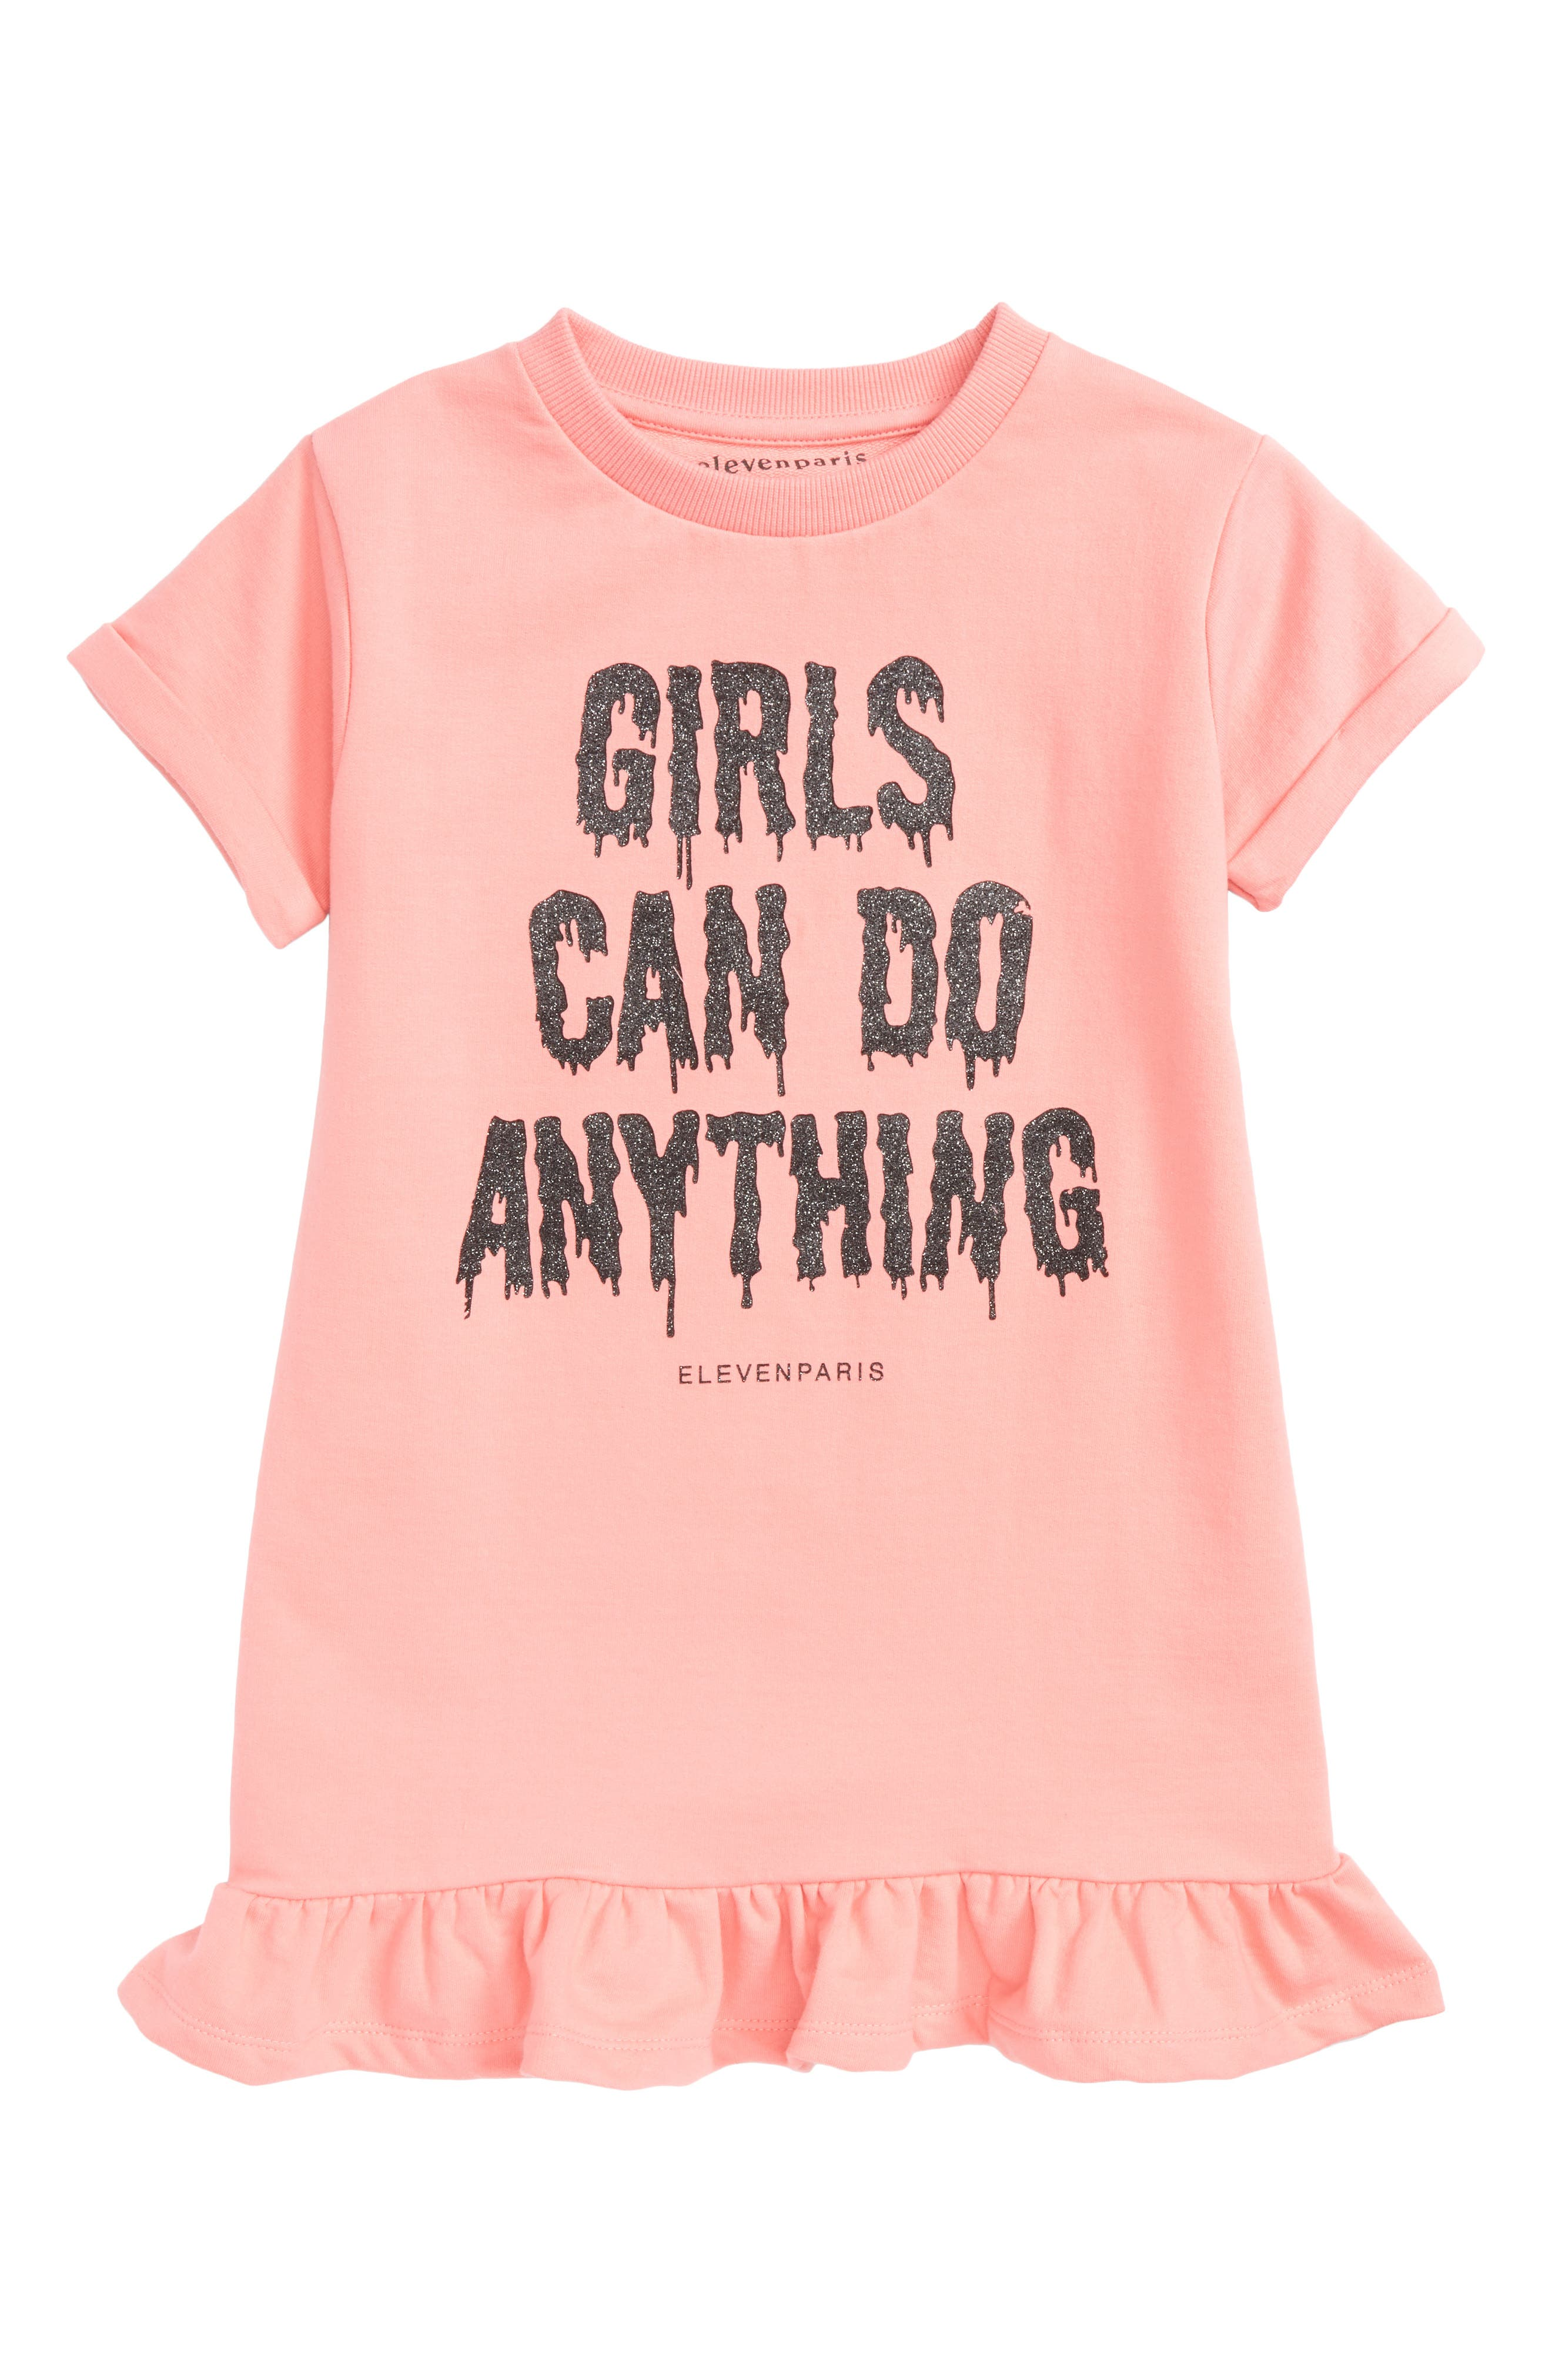 Girls Can Do Anything Graphic Dress,                             Main thumbnail 1, color,                             650